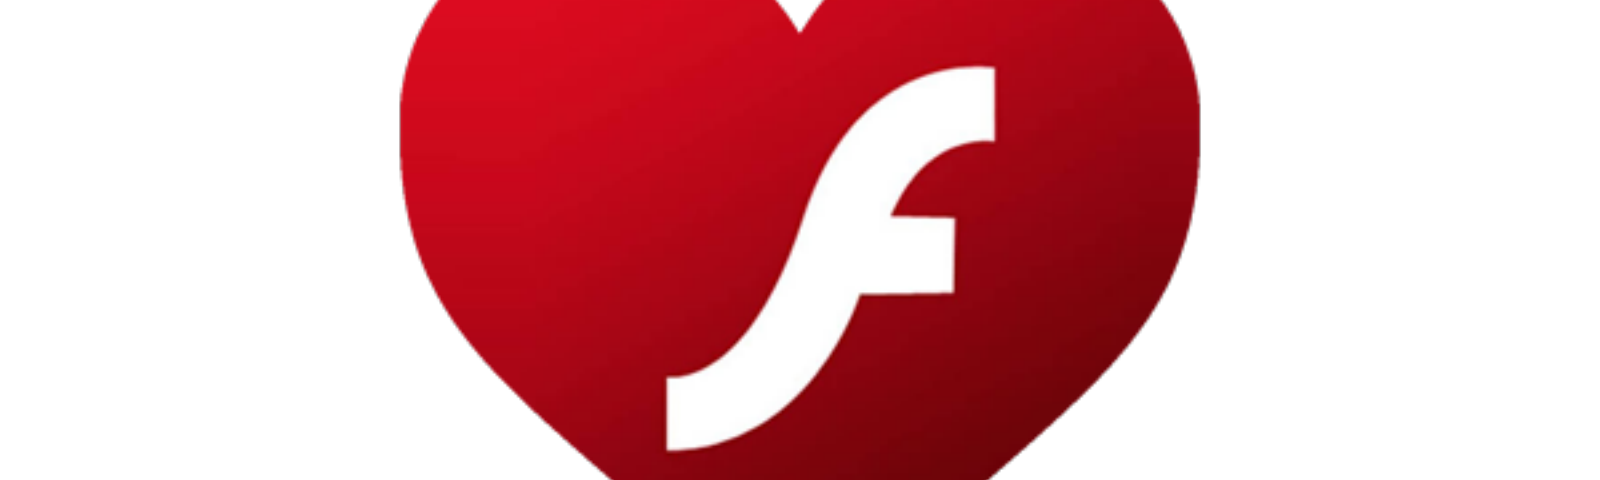 flash-heart